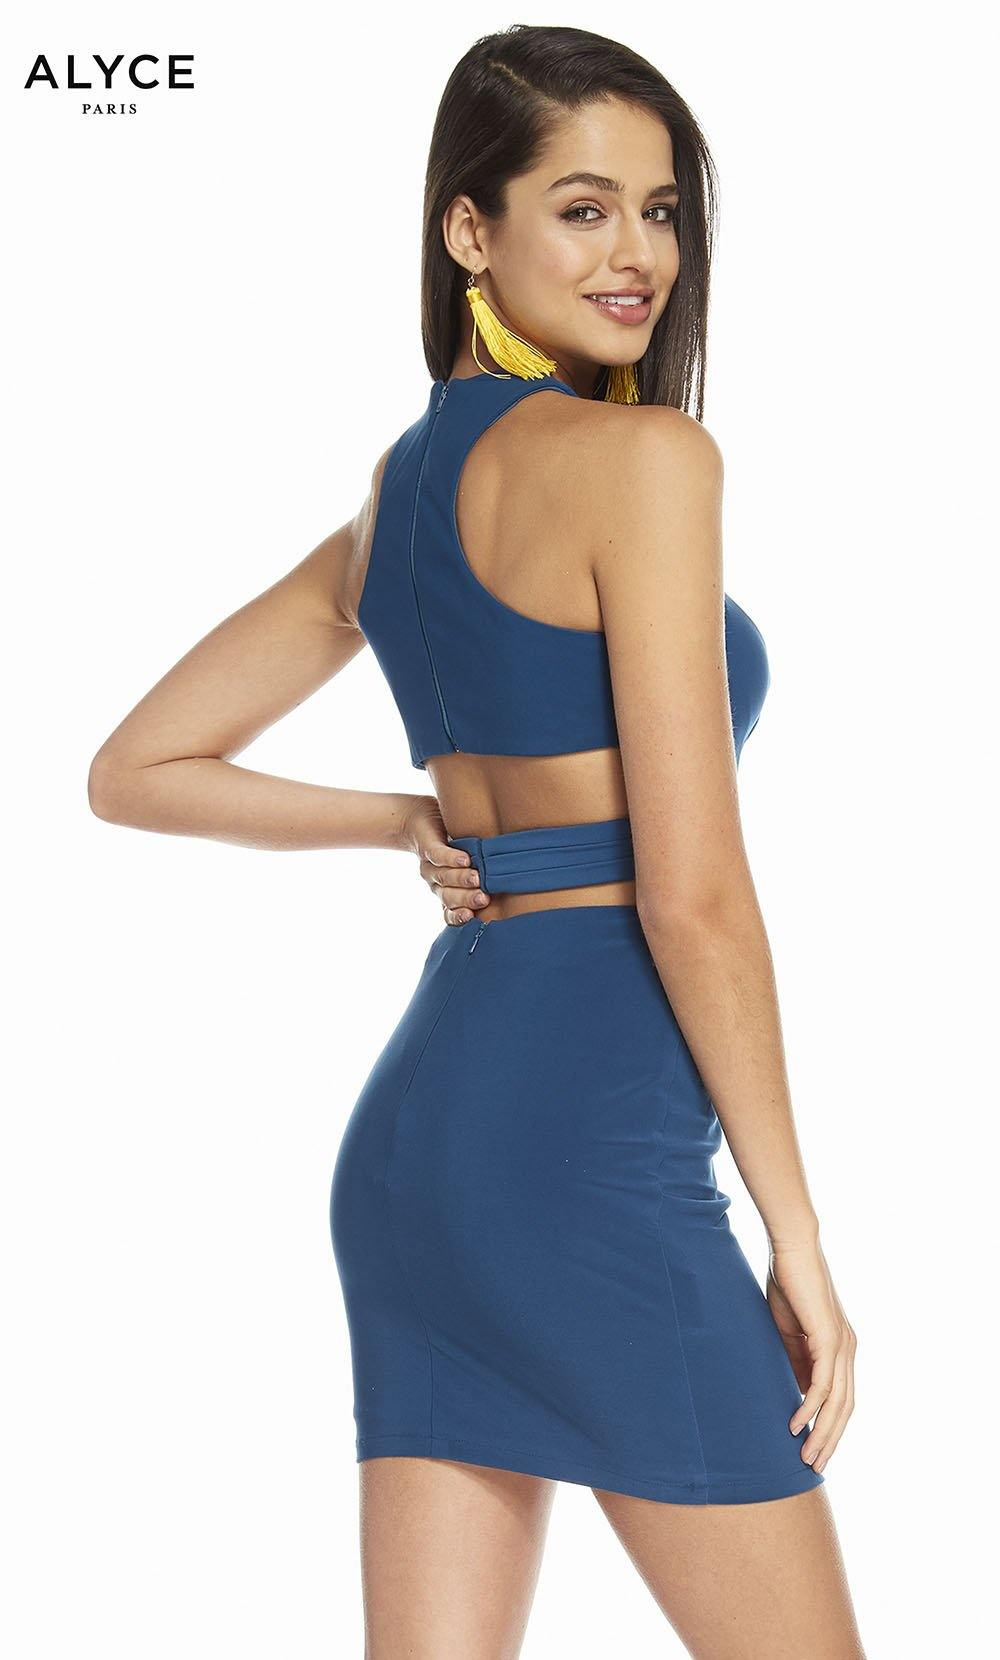 Alyce 4093 short two piece jersey bodycon dress with a cutout back and keyhole front